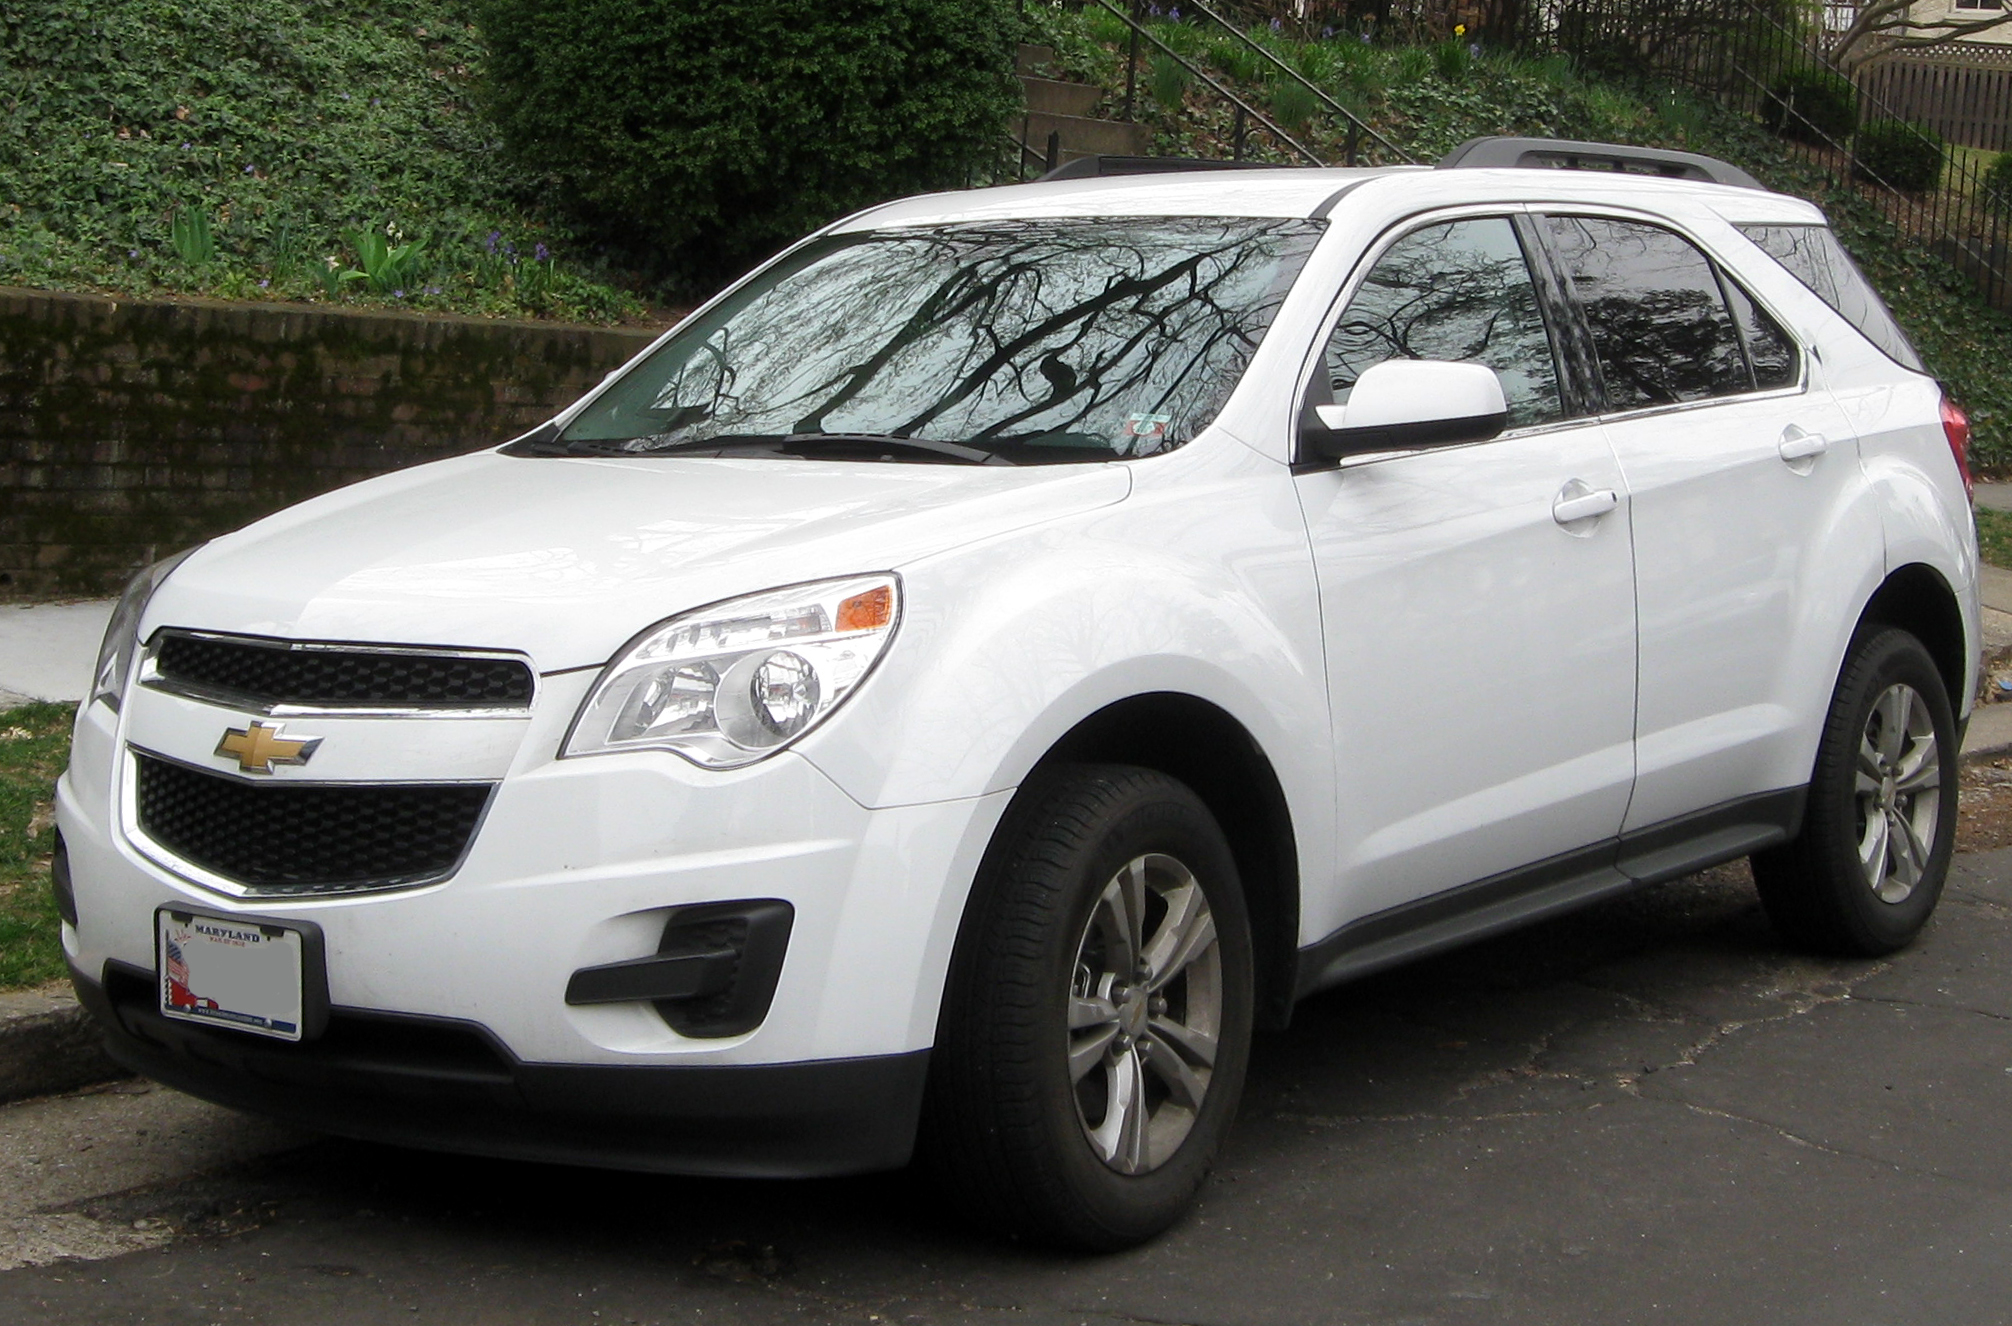 2008 chevy equinox white. Black Bedroom Furniture Sets. Home Design Ideas